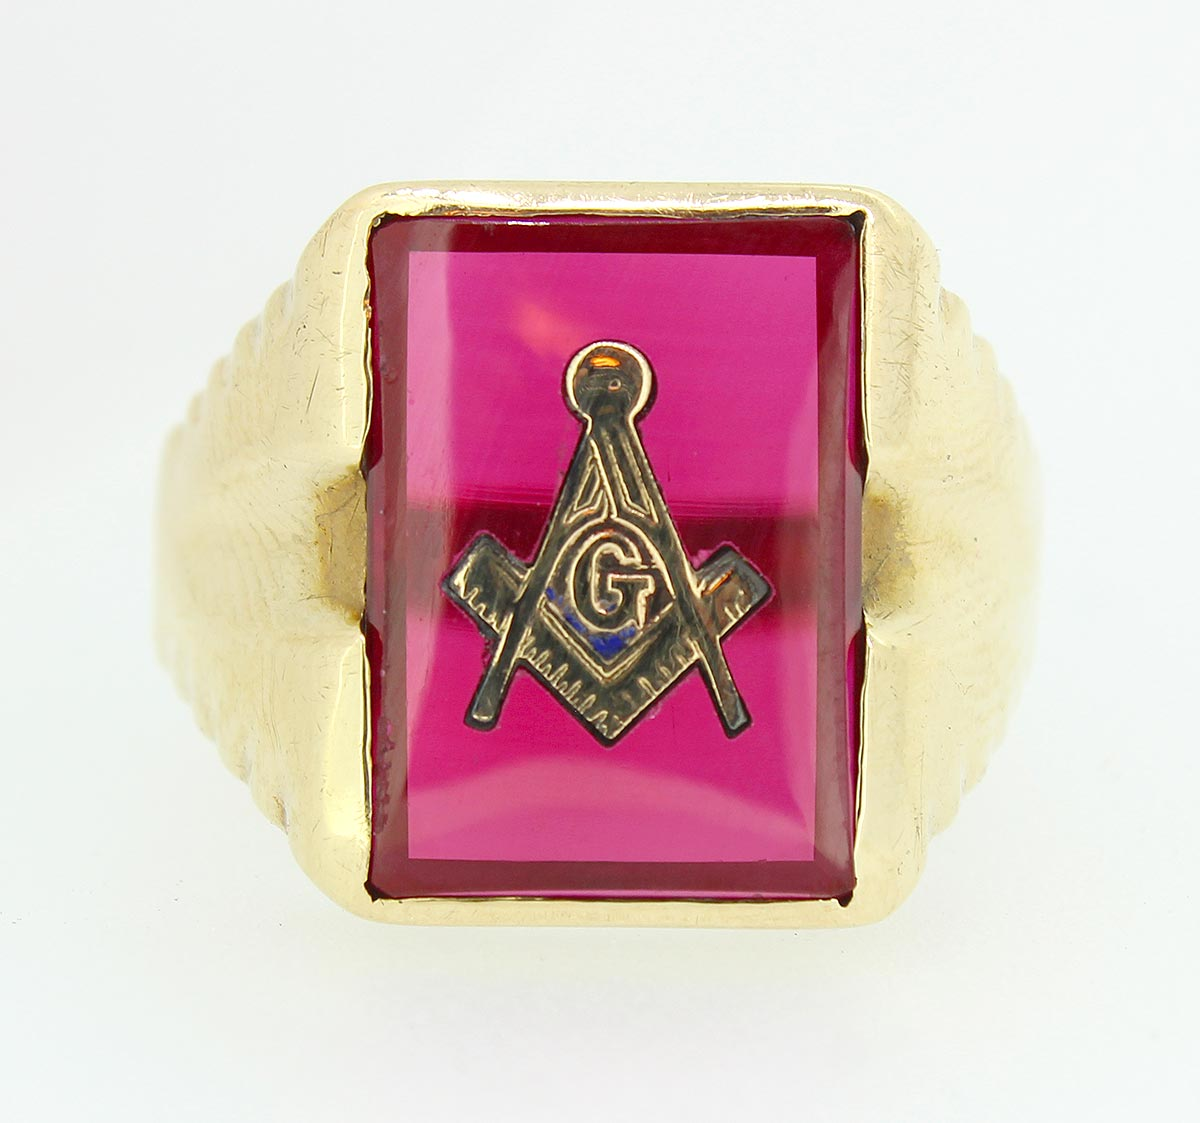 VINTAGE ESTATE MEN'S 10K SOLID GOLD MASONIC RUBY RING SIZE 13 1/2 OFFERED BY ANTIQUE DIGGER